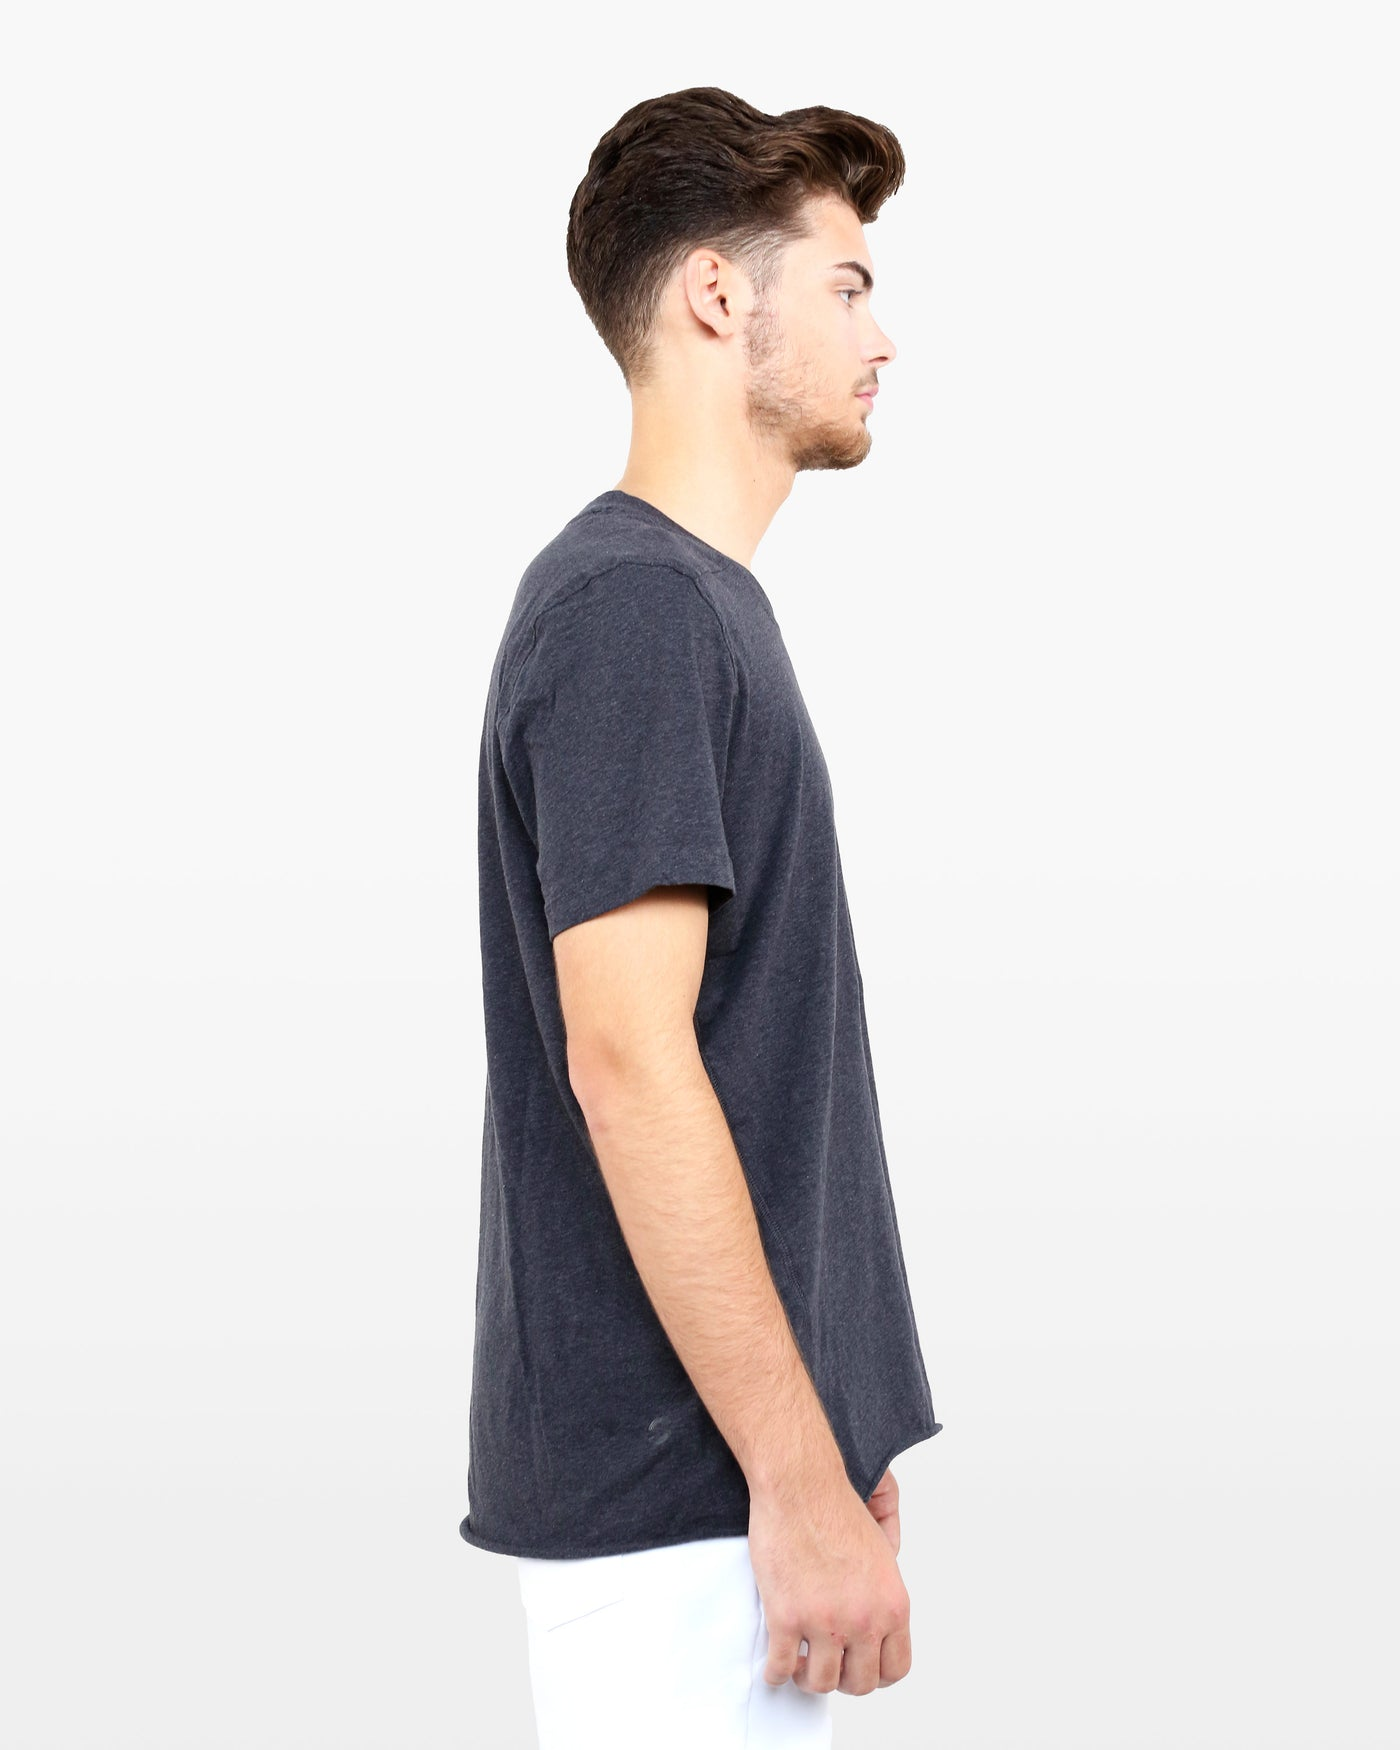 Bohr Tee DTT in charcoal